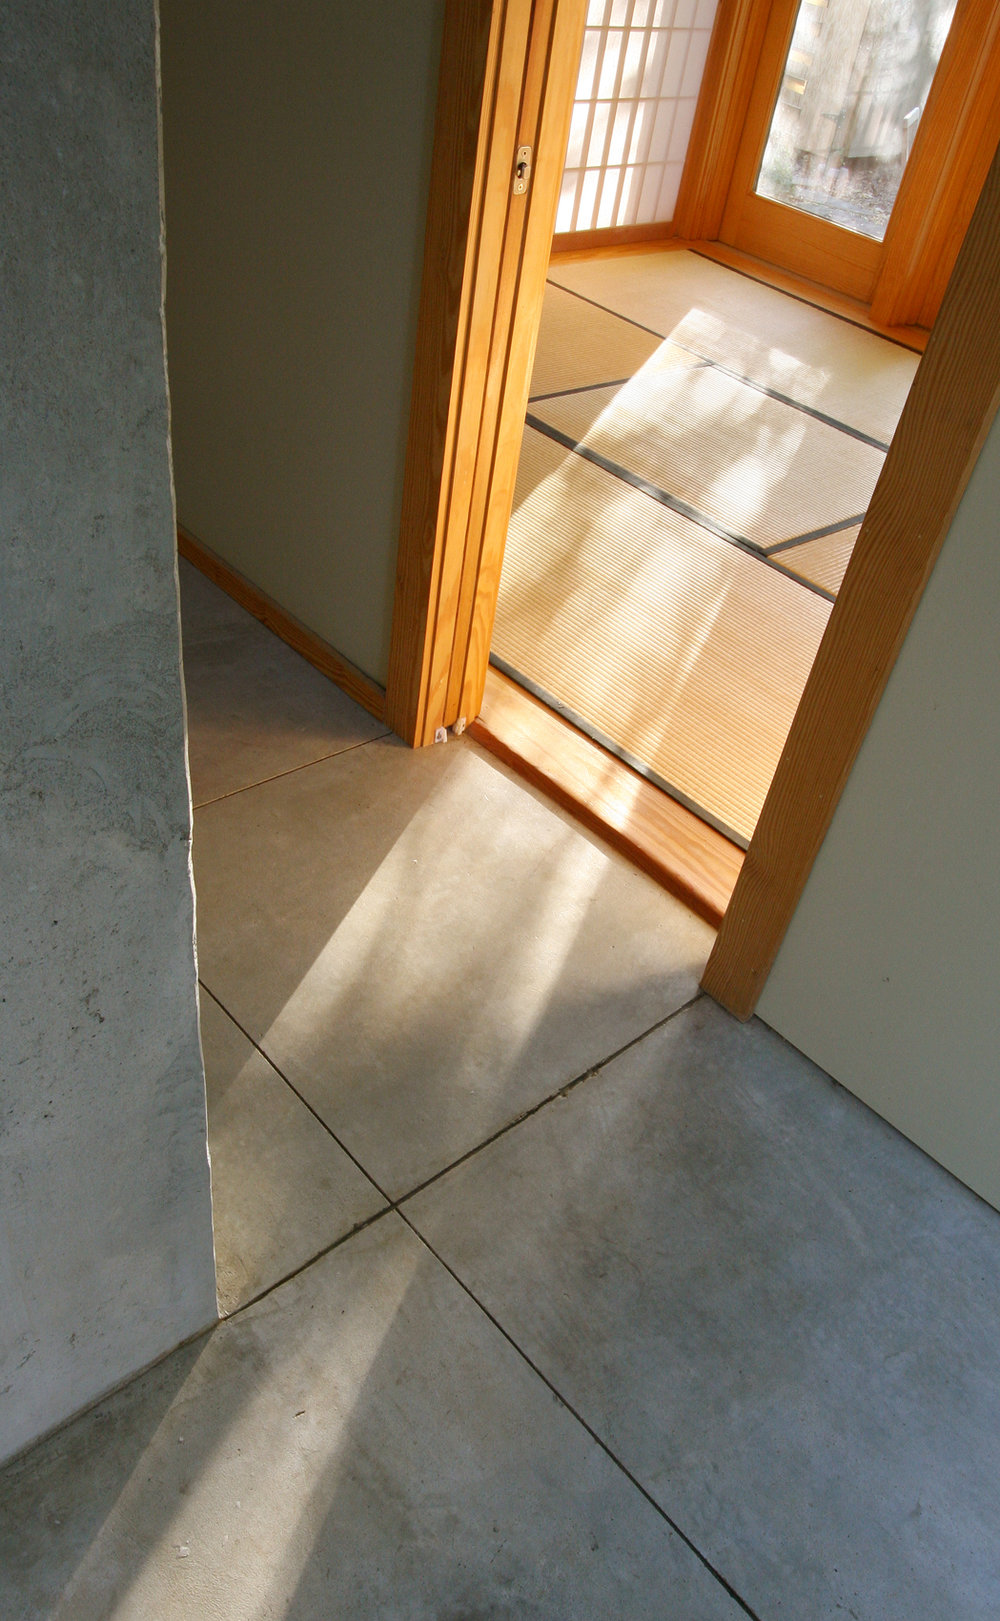 11-shower floor.JPG